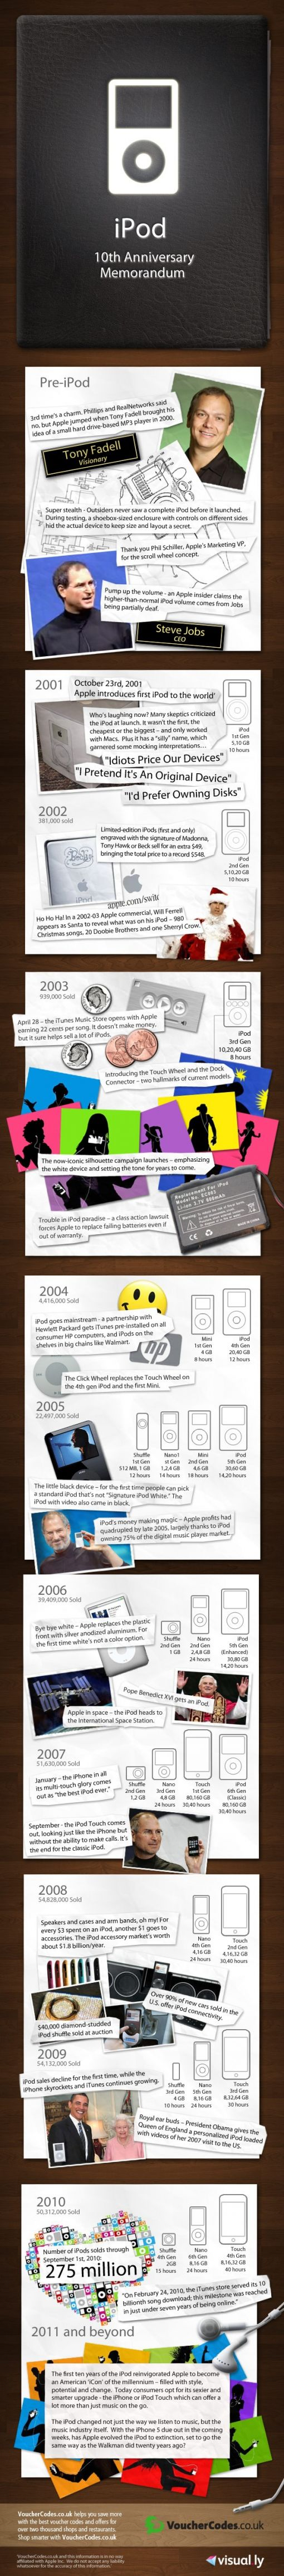 ipodbirthday_infographic